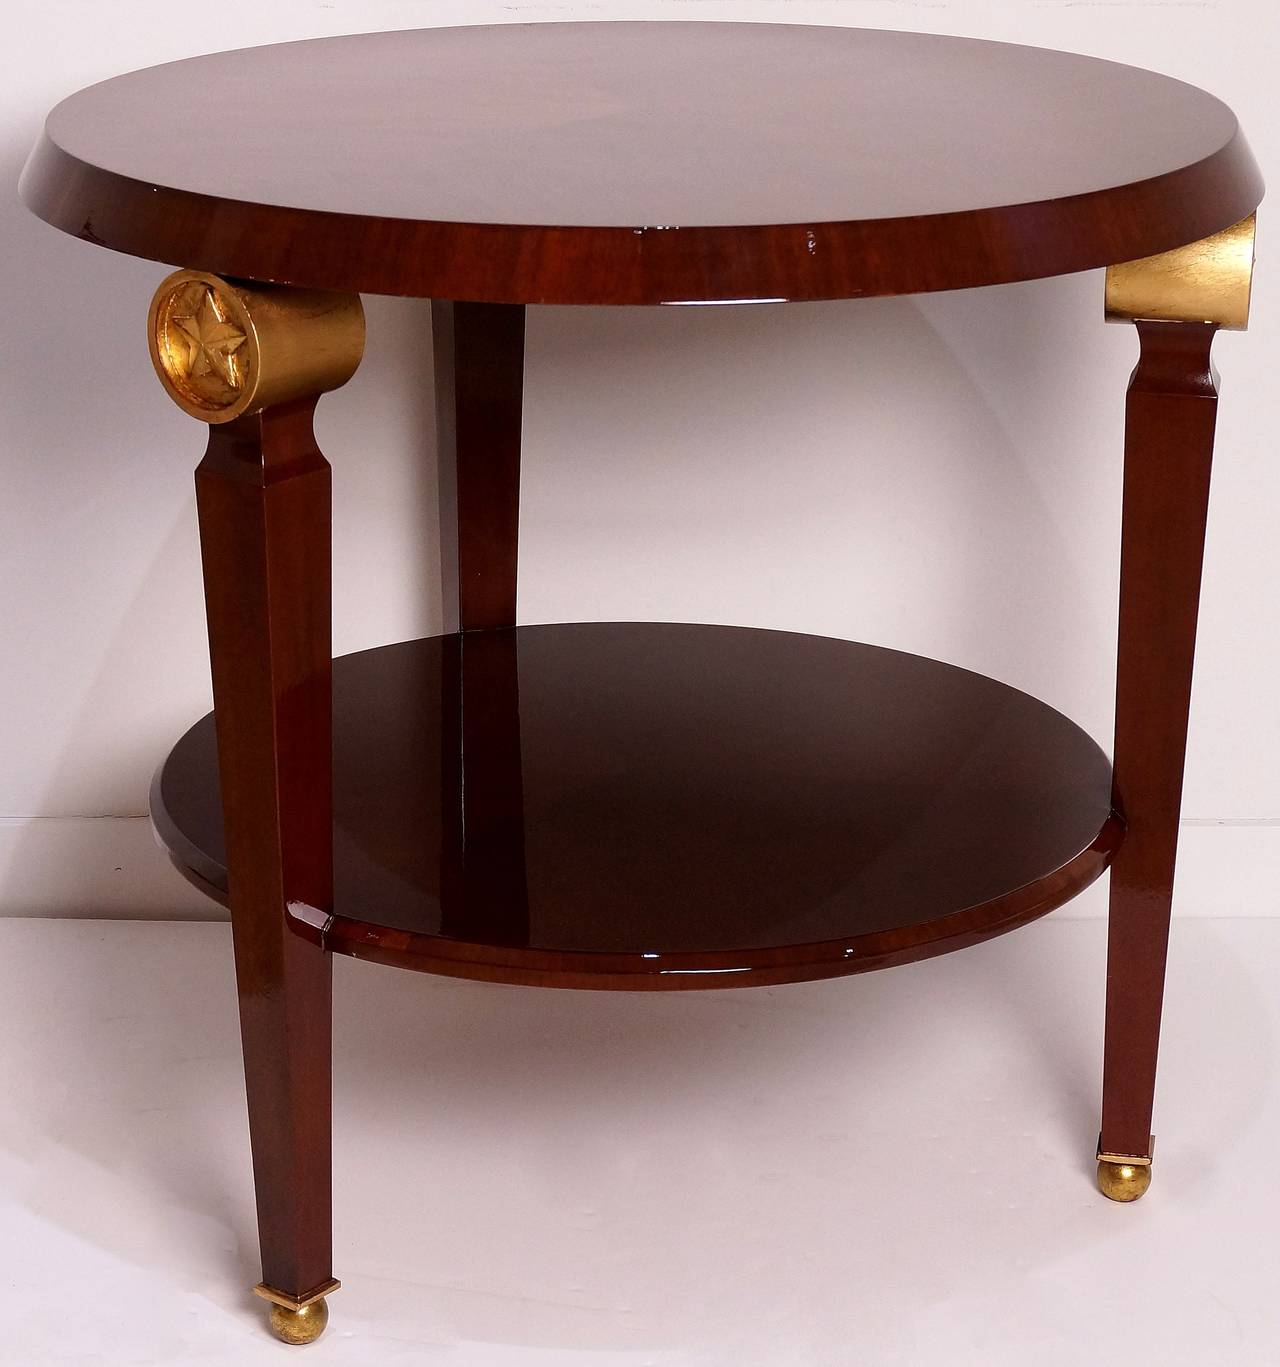 This two-tiered center-table is in the style of Maison Jansen, with its gold-finished star medallions,  mahogany wood veneers and solids this piece has an overtone of French Art Deco and French Empire in the taste moderne.